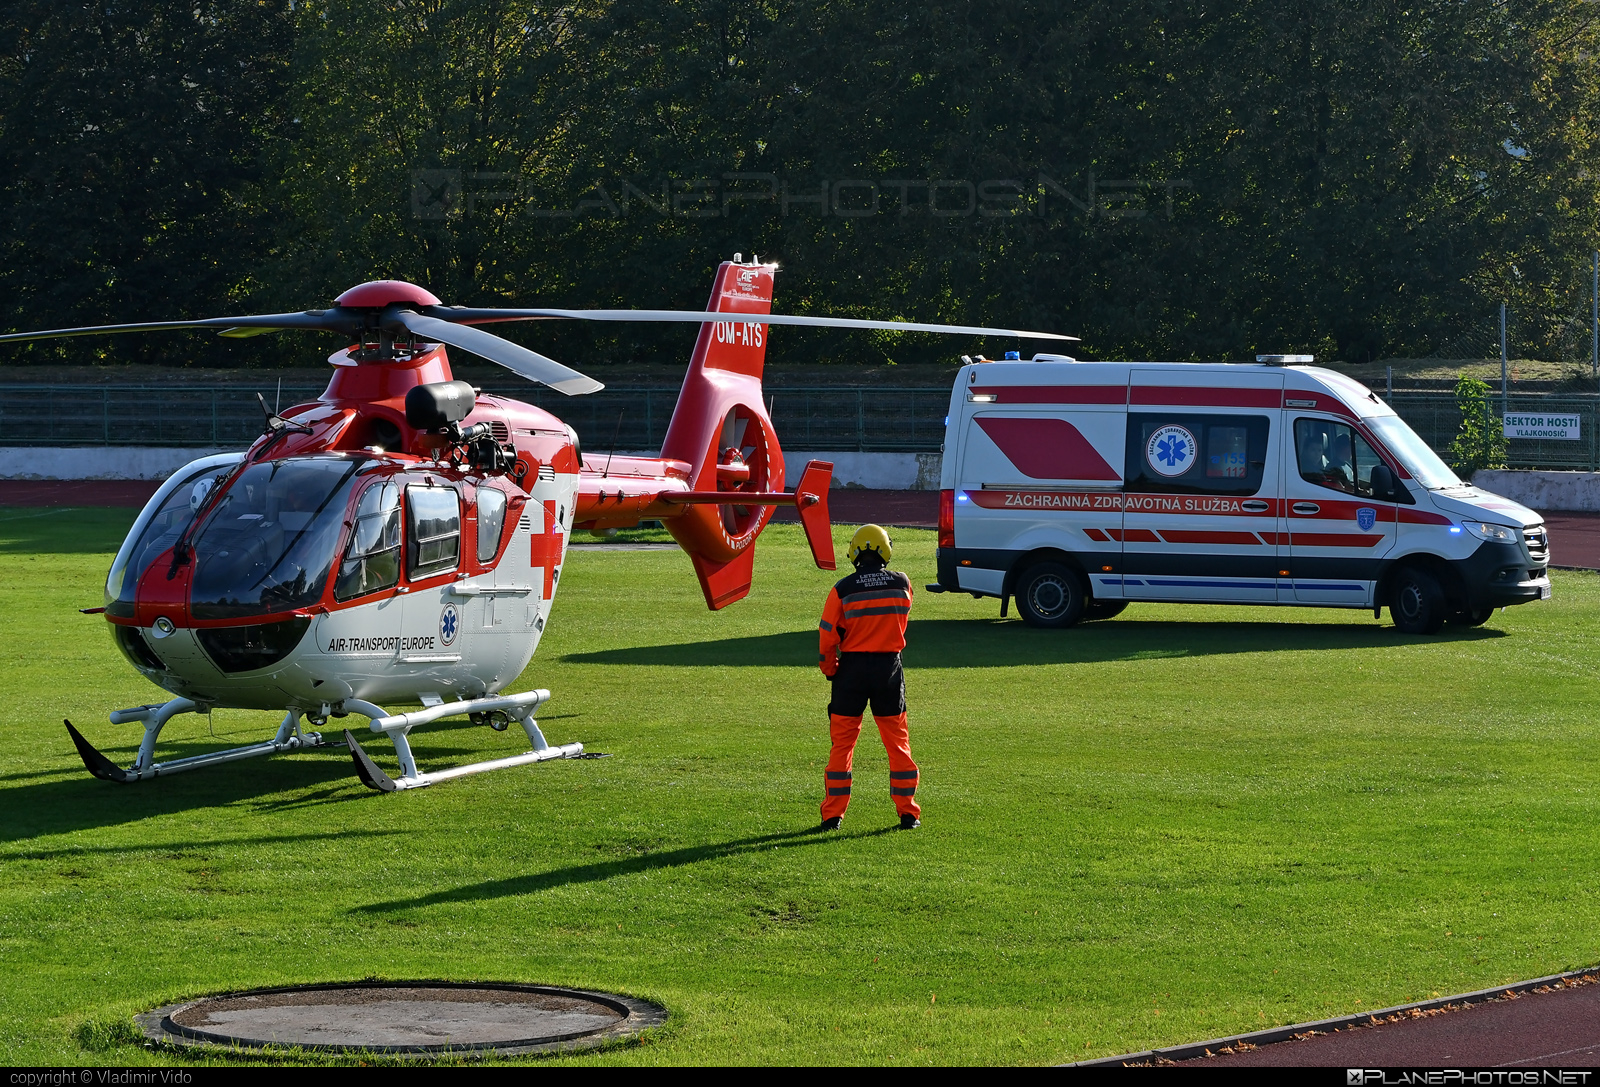 Eurocopter EC135 P2+ - OM-ATS operated by Air Transport Europe #airtransporteurope #ec135 #ec135p2 #ec135p2plus #eurocopter